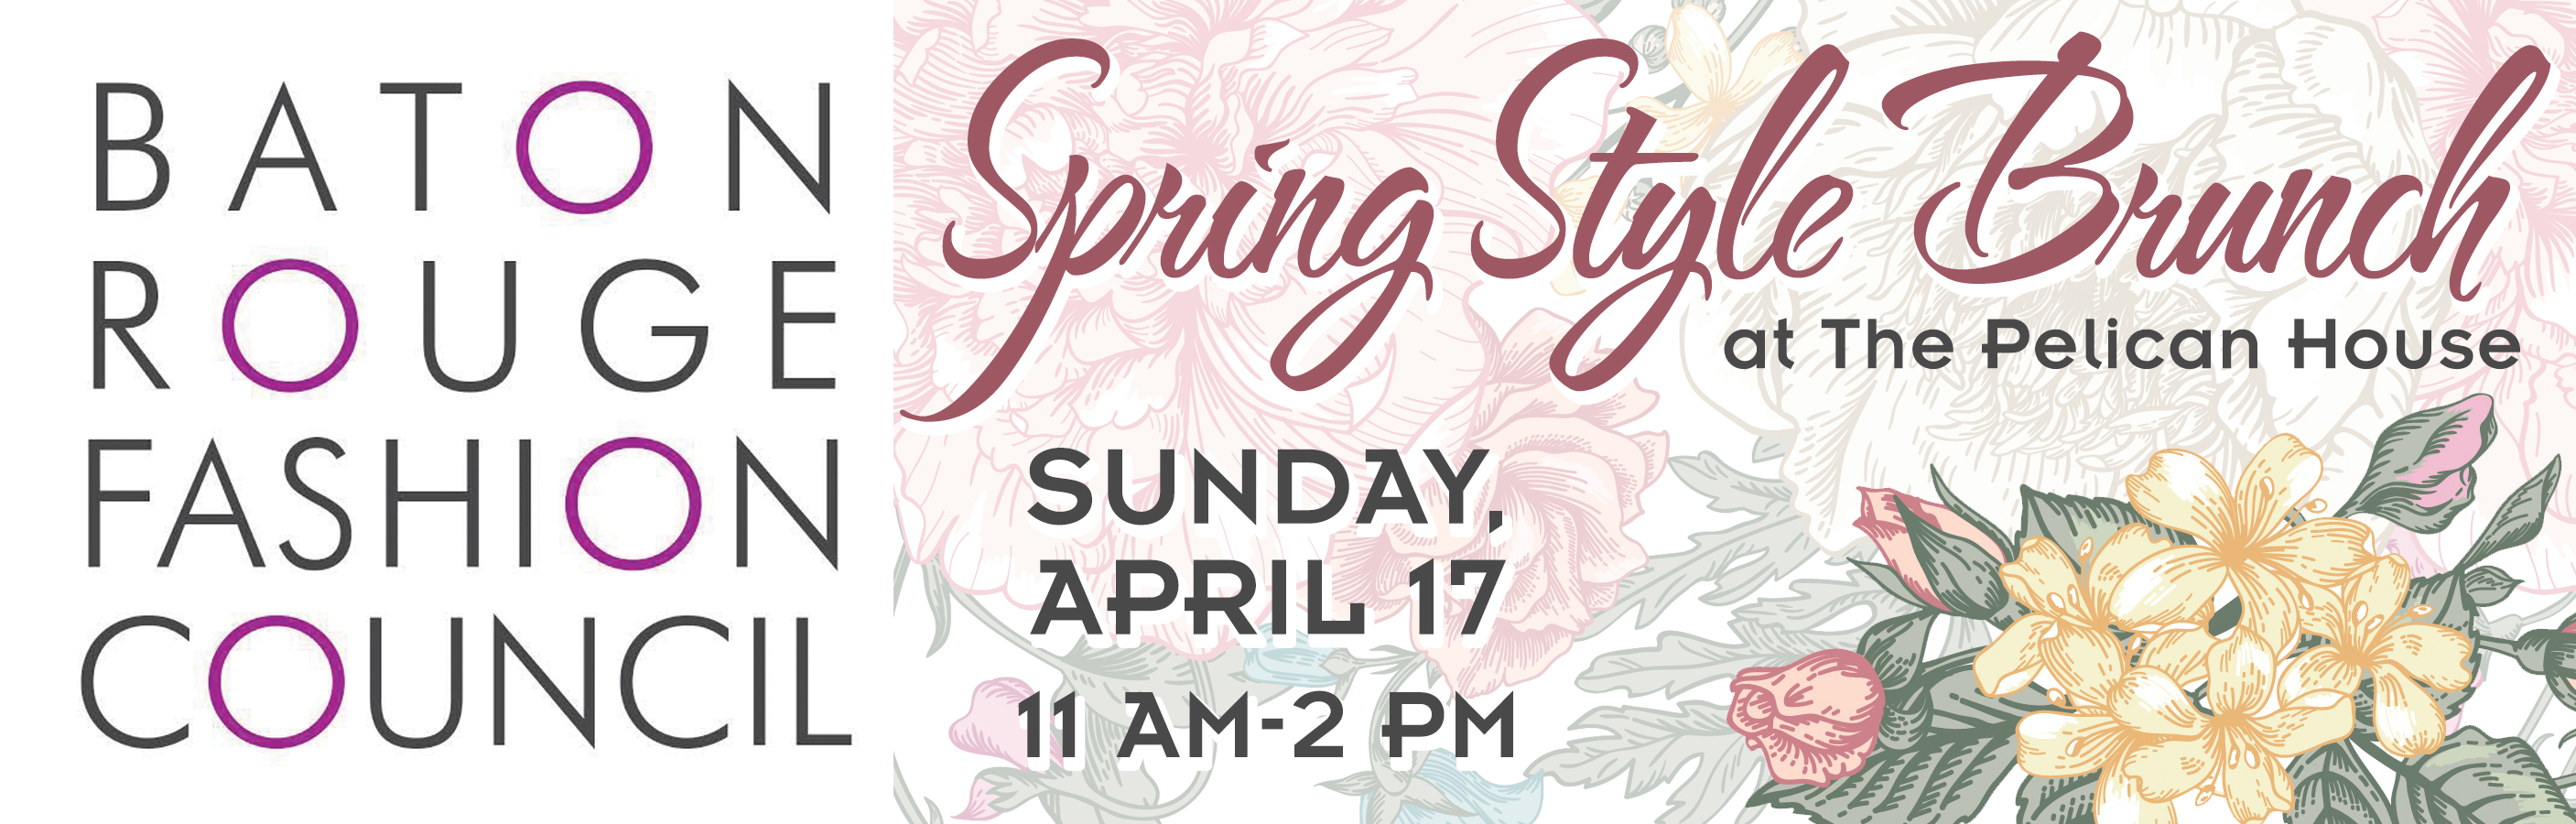 The Baton Rouge Fashion Council Spring Style Brunch will be at Pelican House on April 17, 2016!